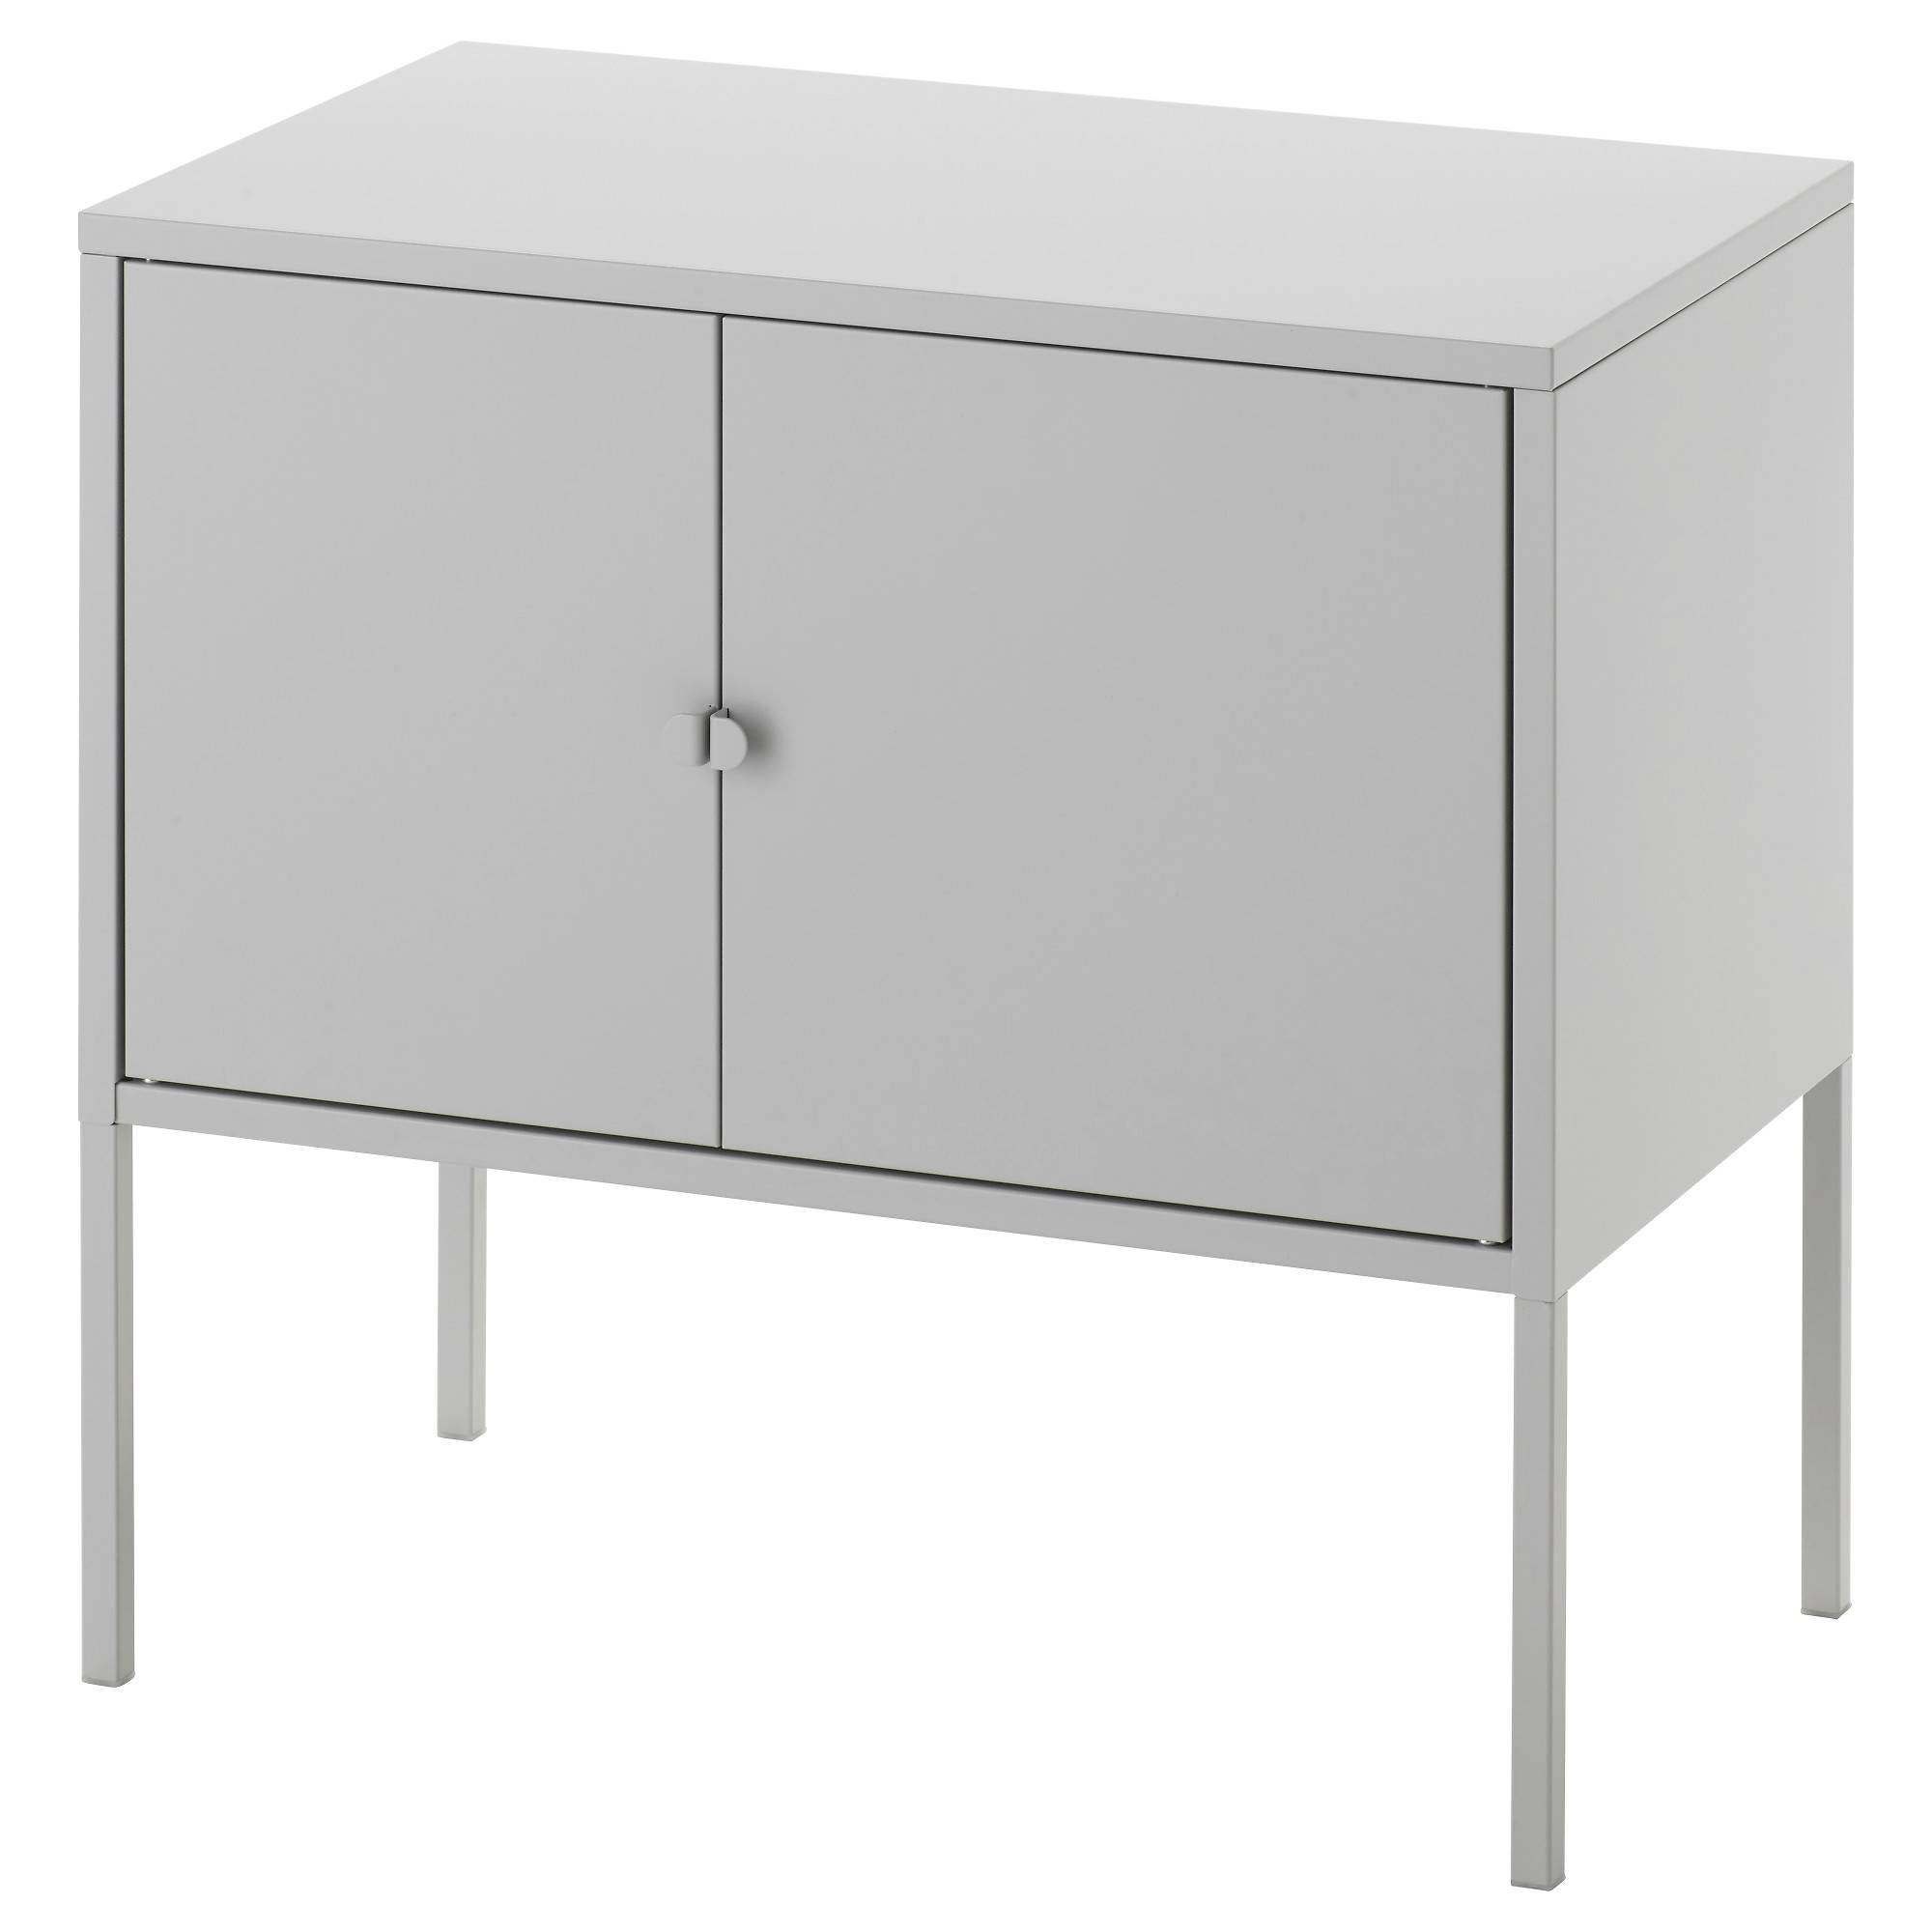 Cabinets & Sideboards - Ikea in 80 Inch Sideboards (Image 4 of 30)